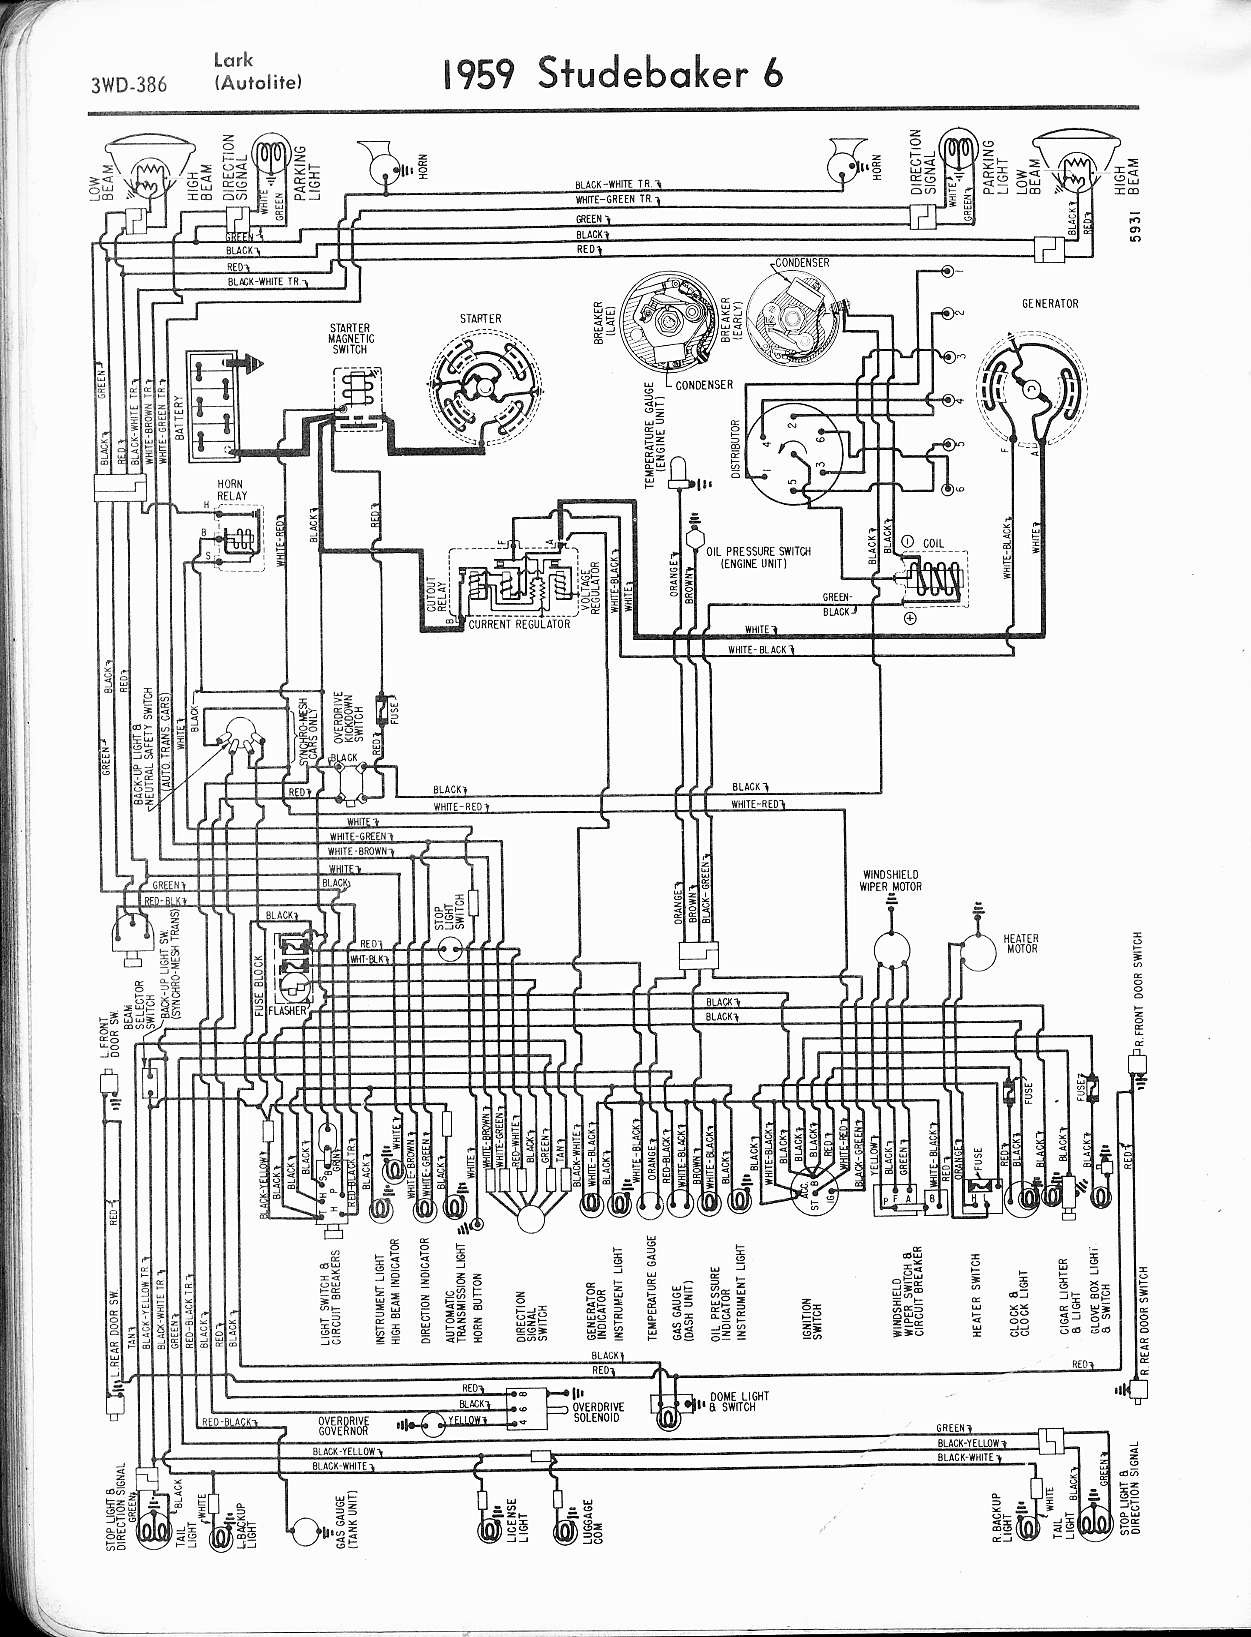 Car Electrical System Diagram Automotive Wire Wiring Studebaker Technical Help Studebakerparts Of